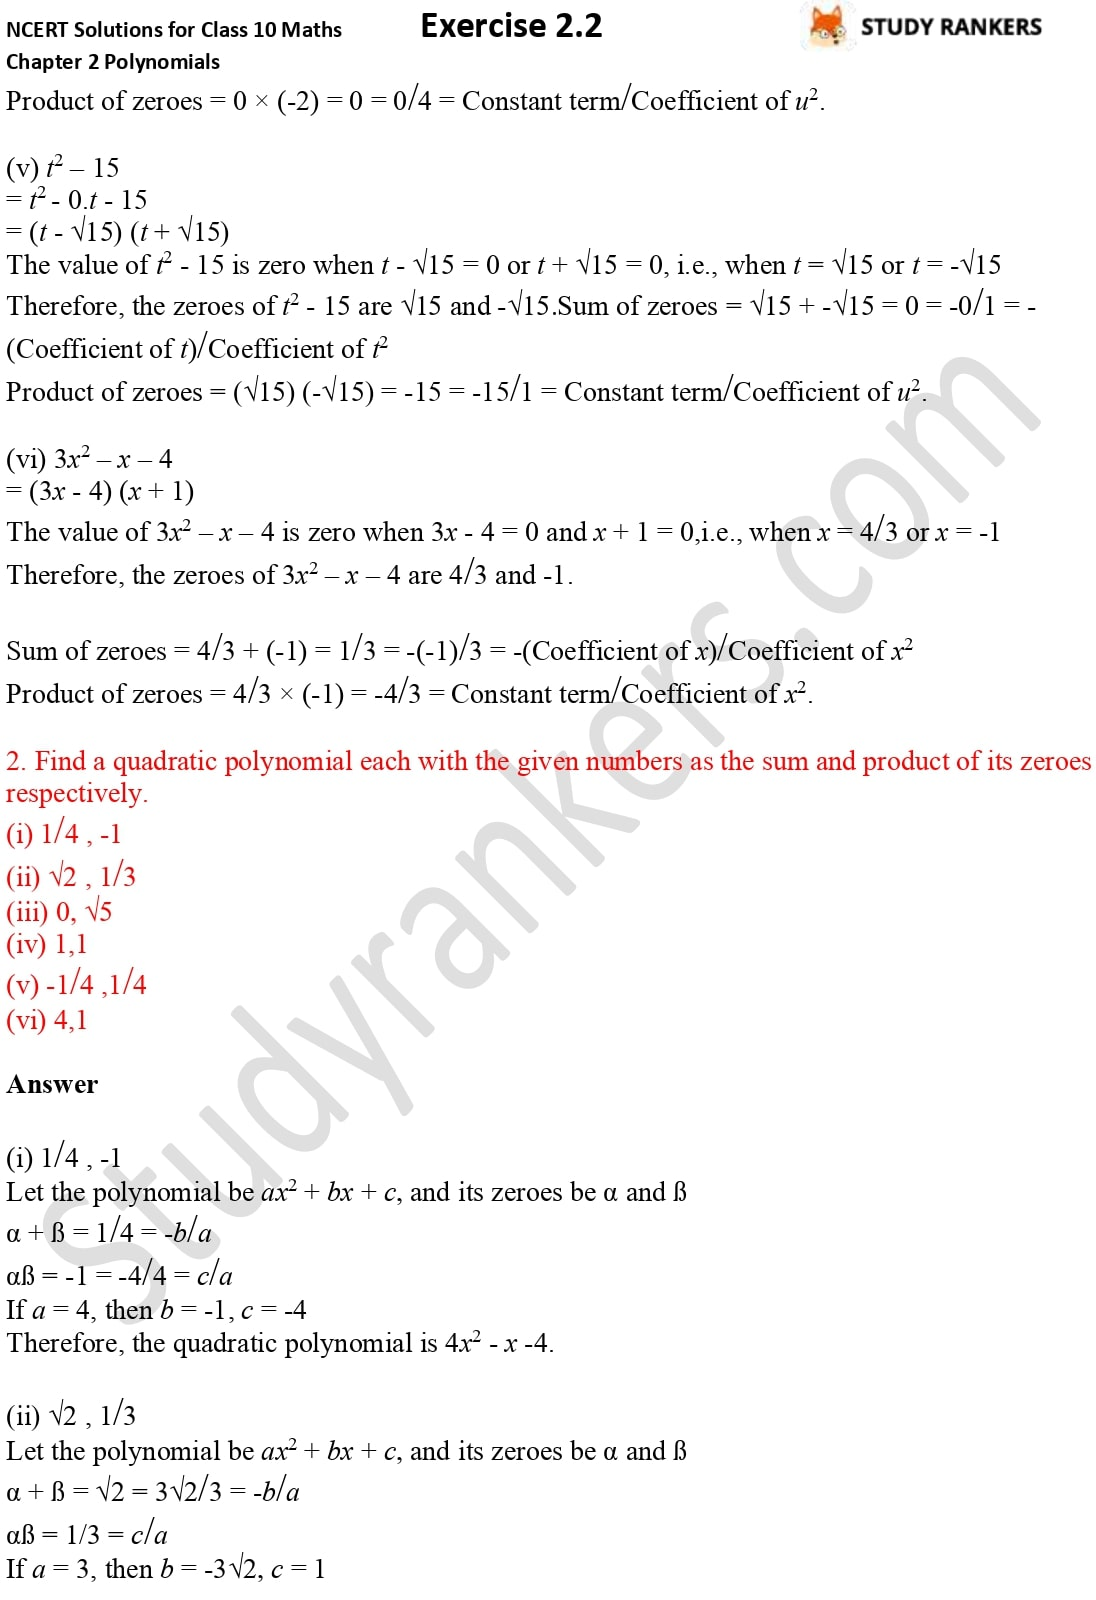 NCERT Solutions for Class 10 Maths Chapter 2 Polynomials Exercise 2.2 2